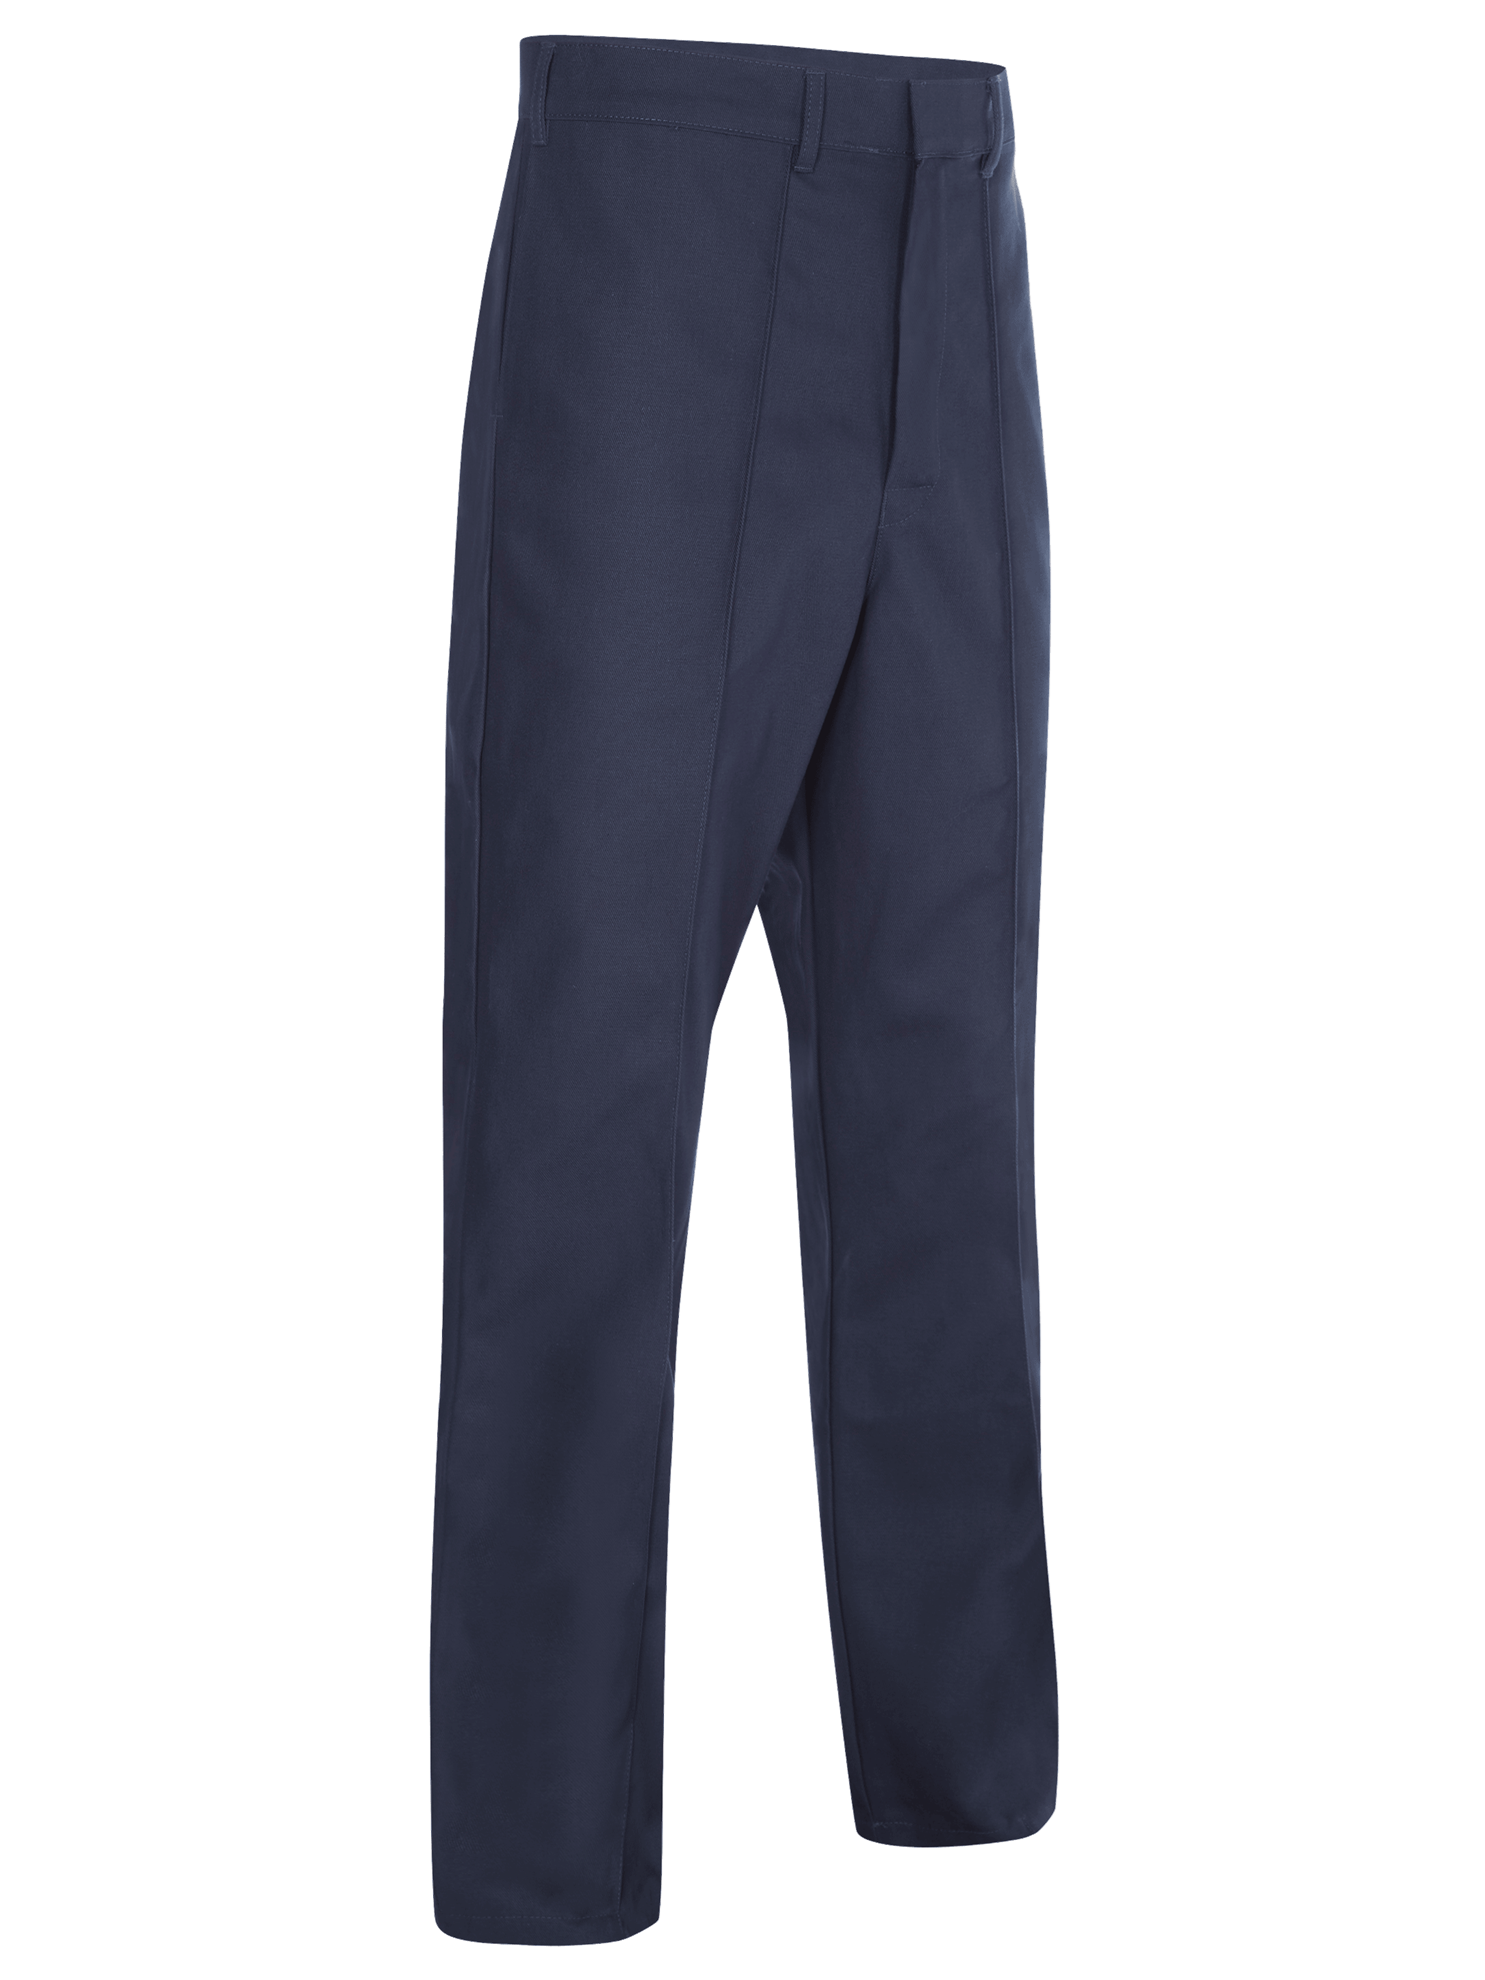 Picture of Trouser made with Zeus FR - Navy